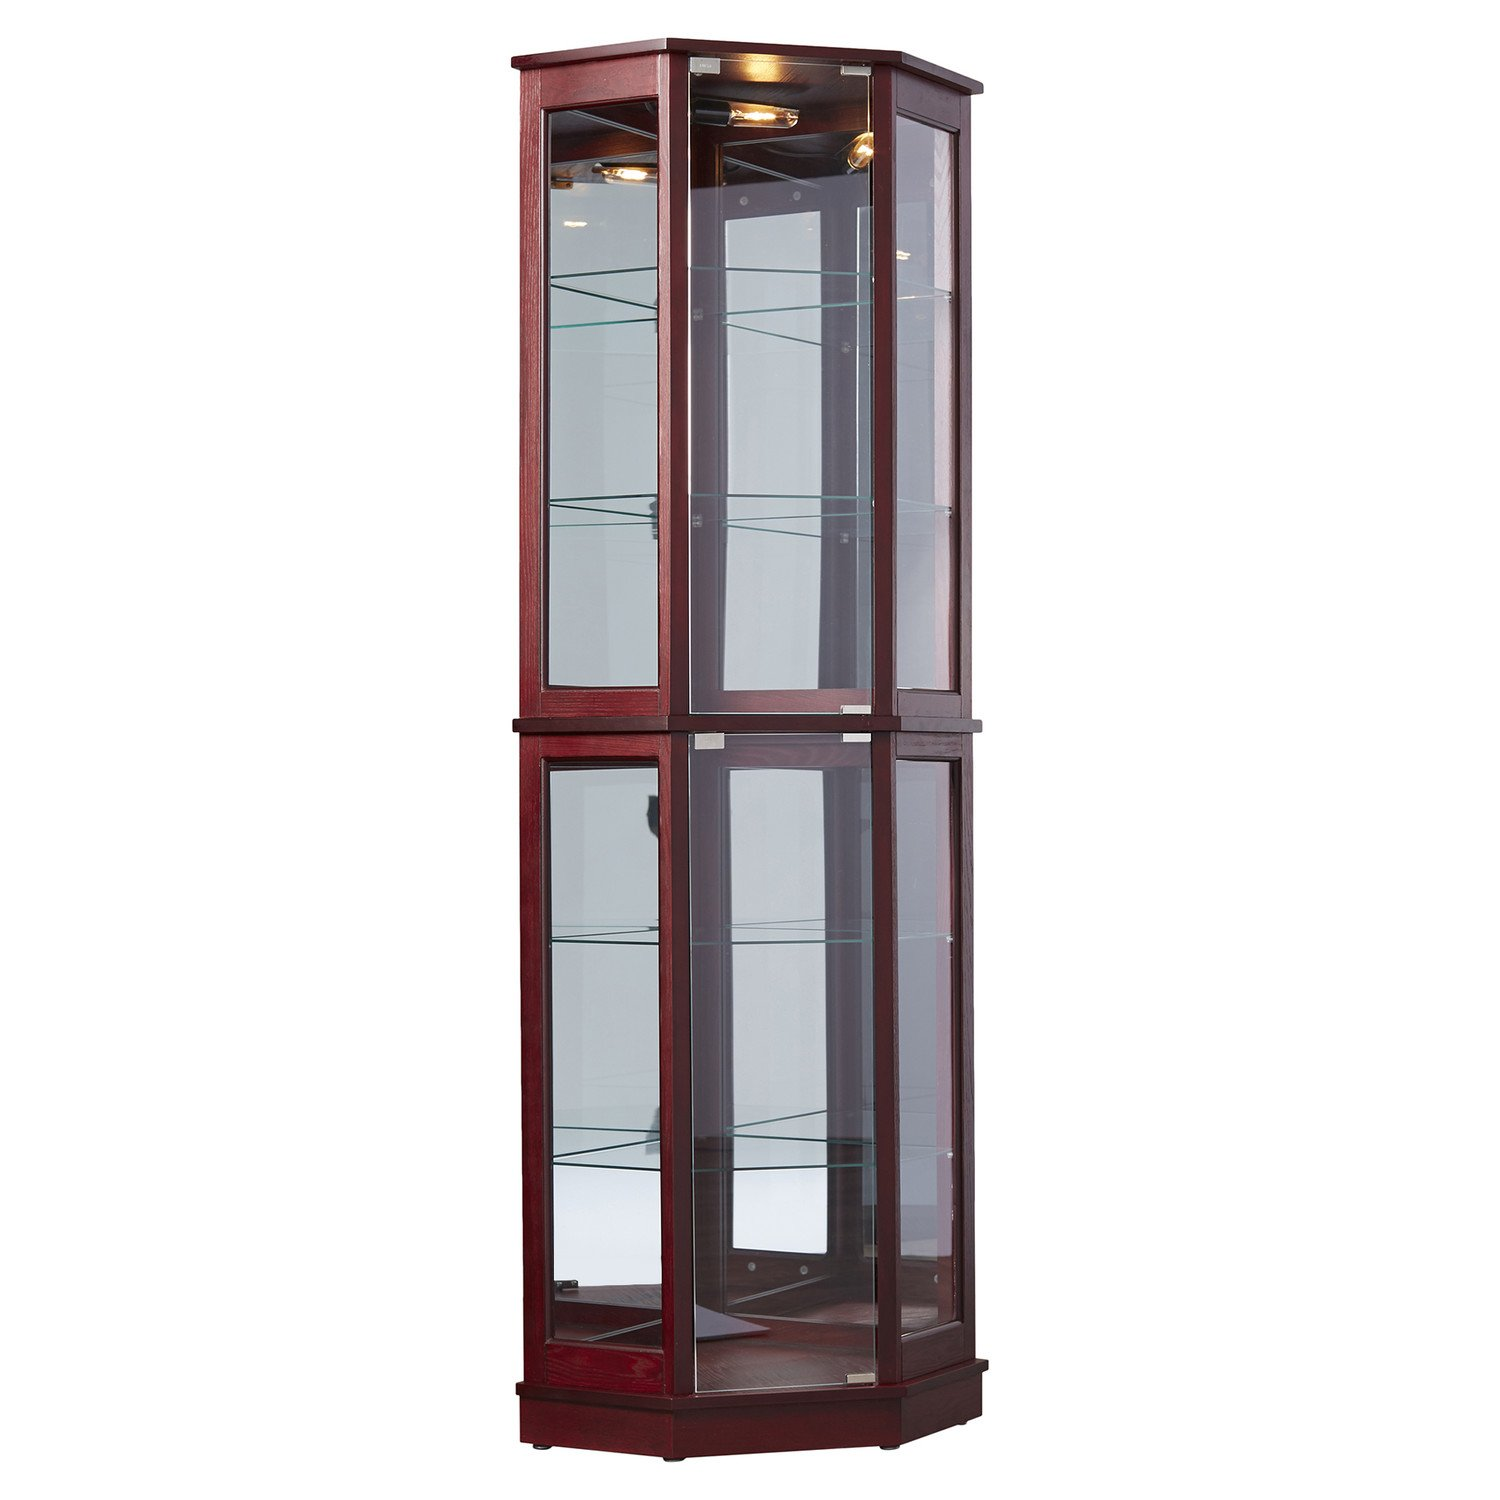 Tall Lighted Corner Curio Cabinet - Corner Hutch for Collectibles, China or as a Liquor Cabinet - Display Case with 2 Shelf Platforms, 4 Adjustable and Removable Glass Shelves and Mirrored Back by Jenlea